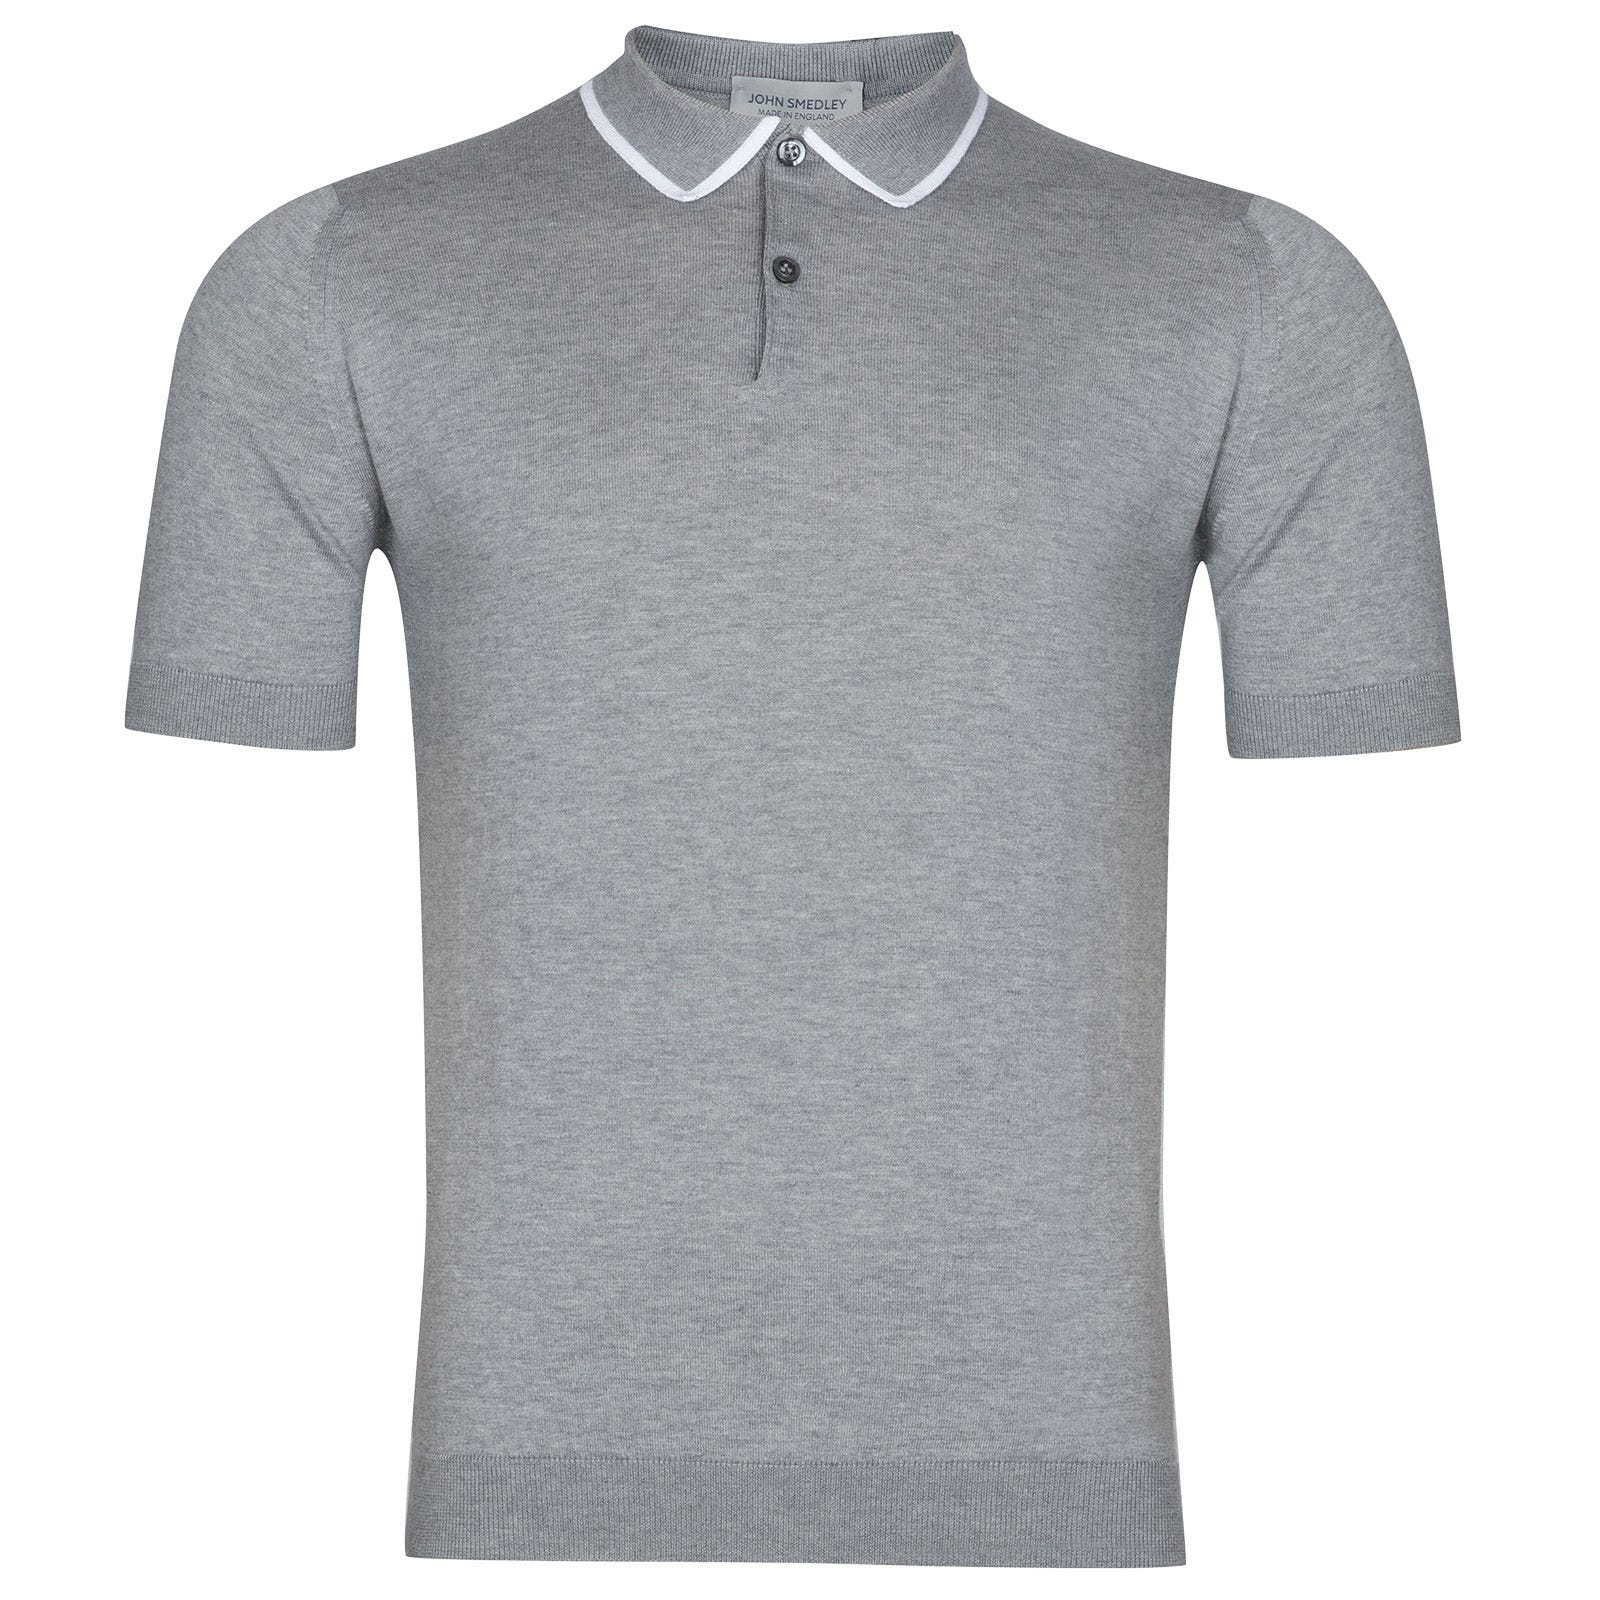 John Smedley Klerk Sea Island Cotton Shirt in Silver-XL